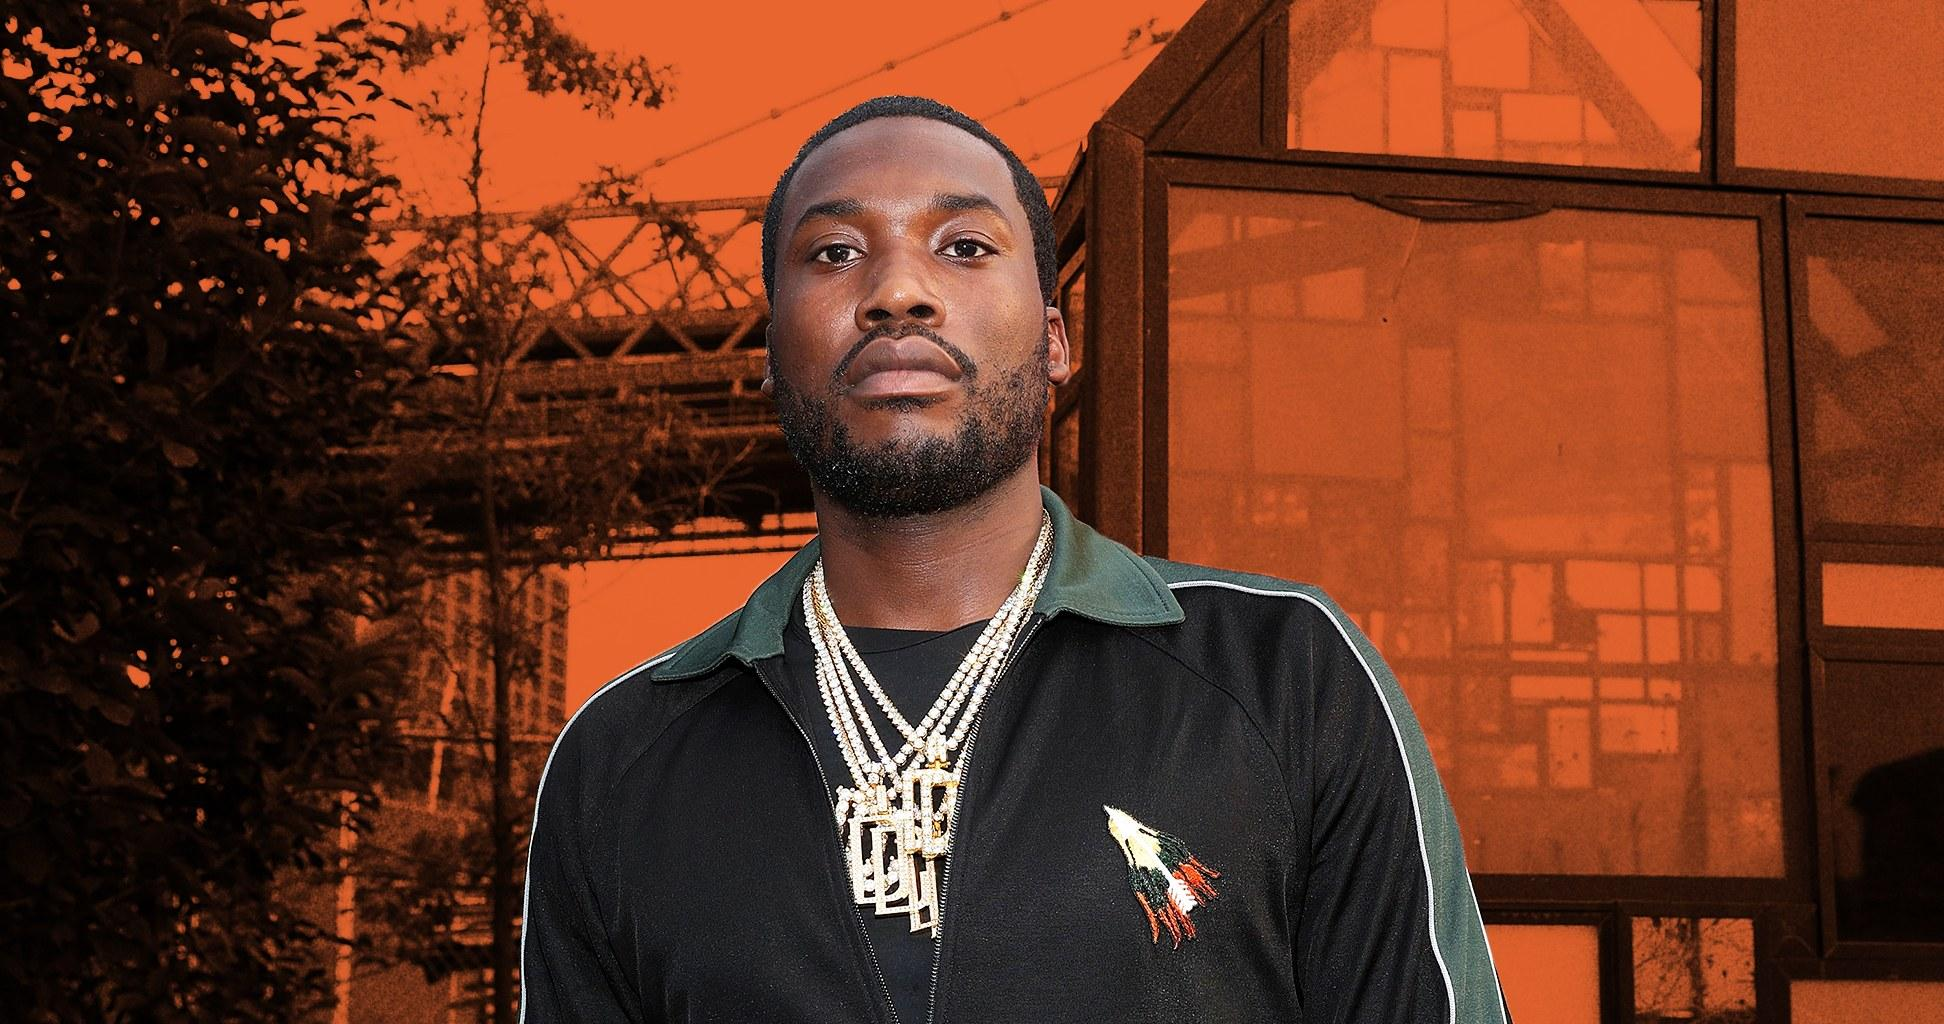 Meek Mill Was Pulled Over By Jamaica Police For A Photo - Watch The Video